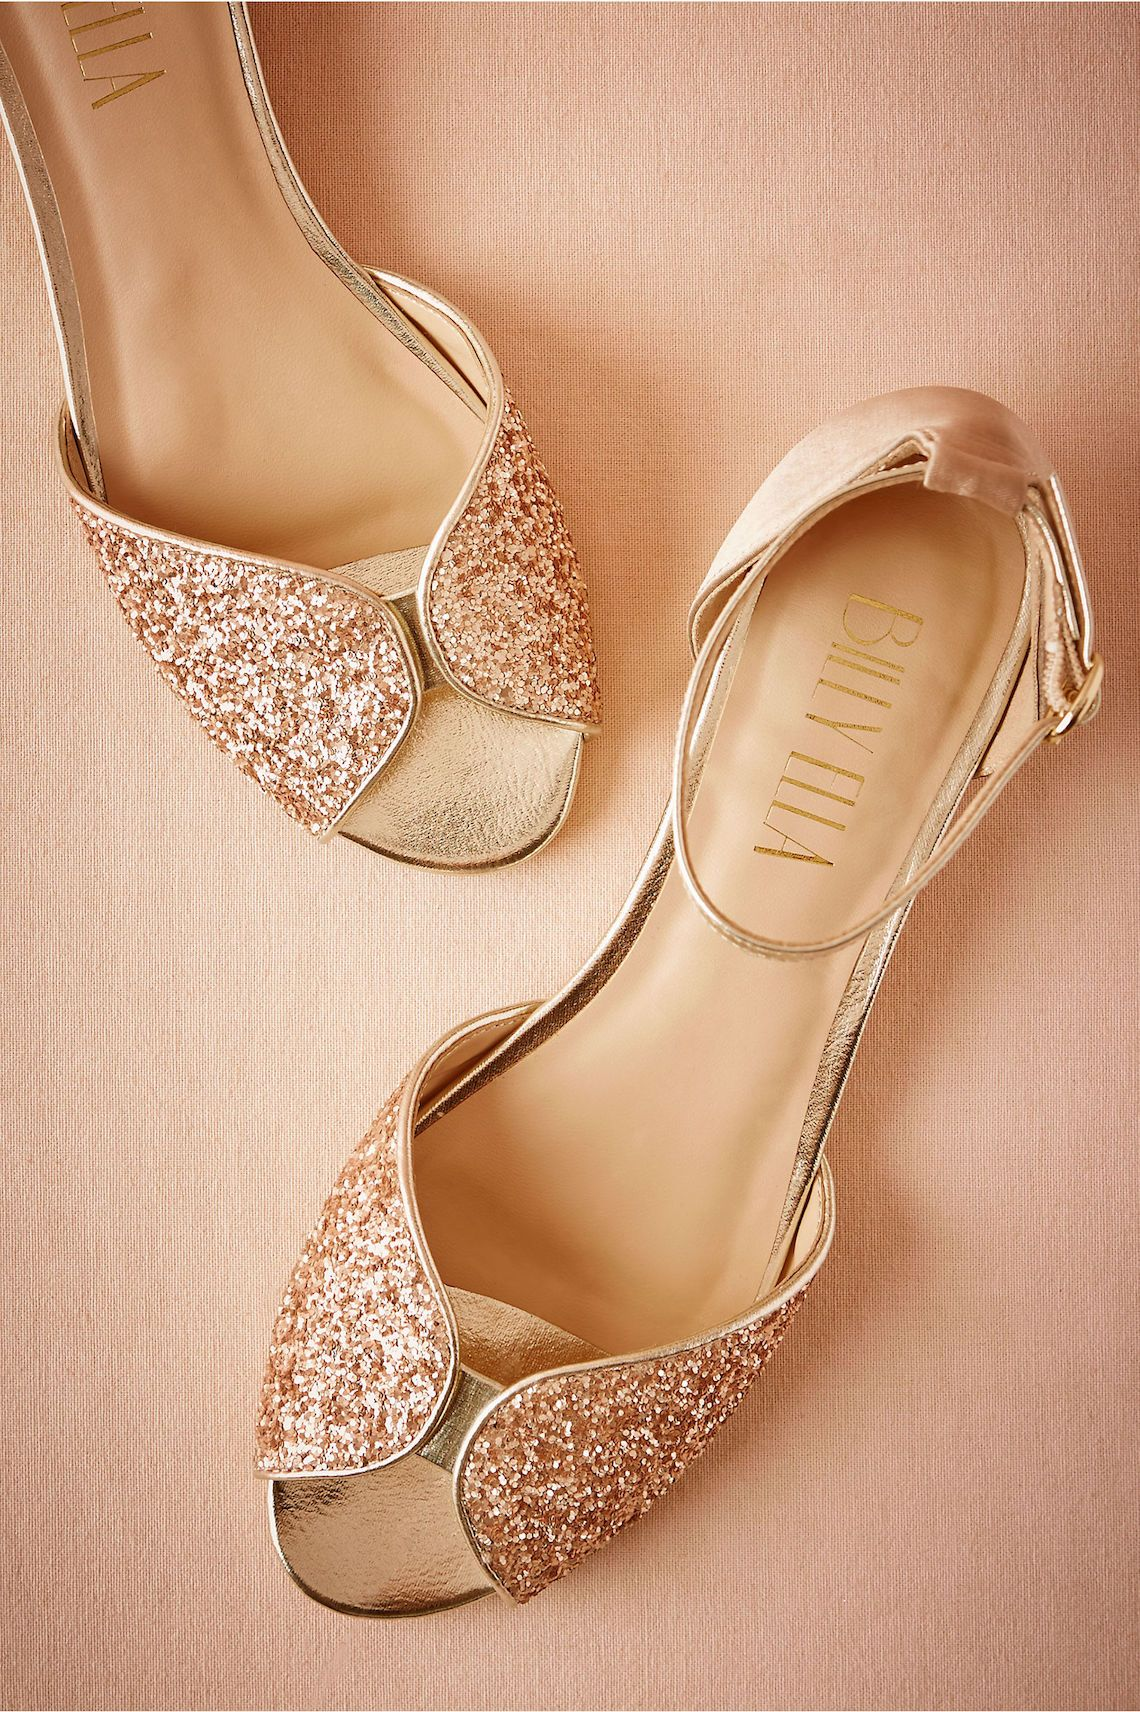 0ac683c67609 10 Flat Wedding Shoes (That Are Just As Chic As Heels)